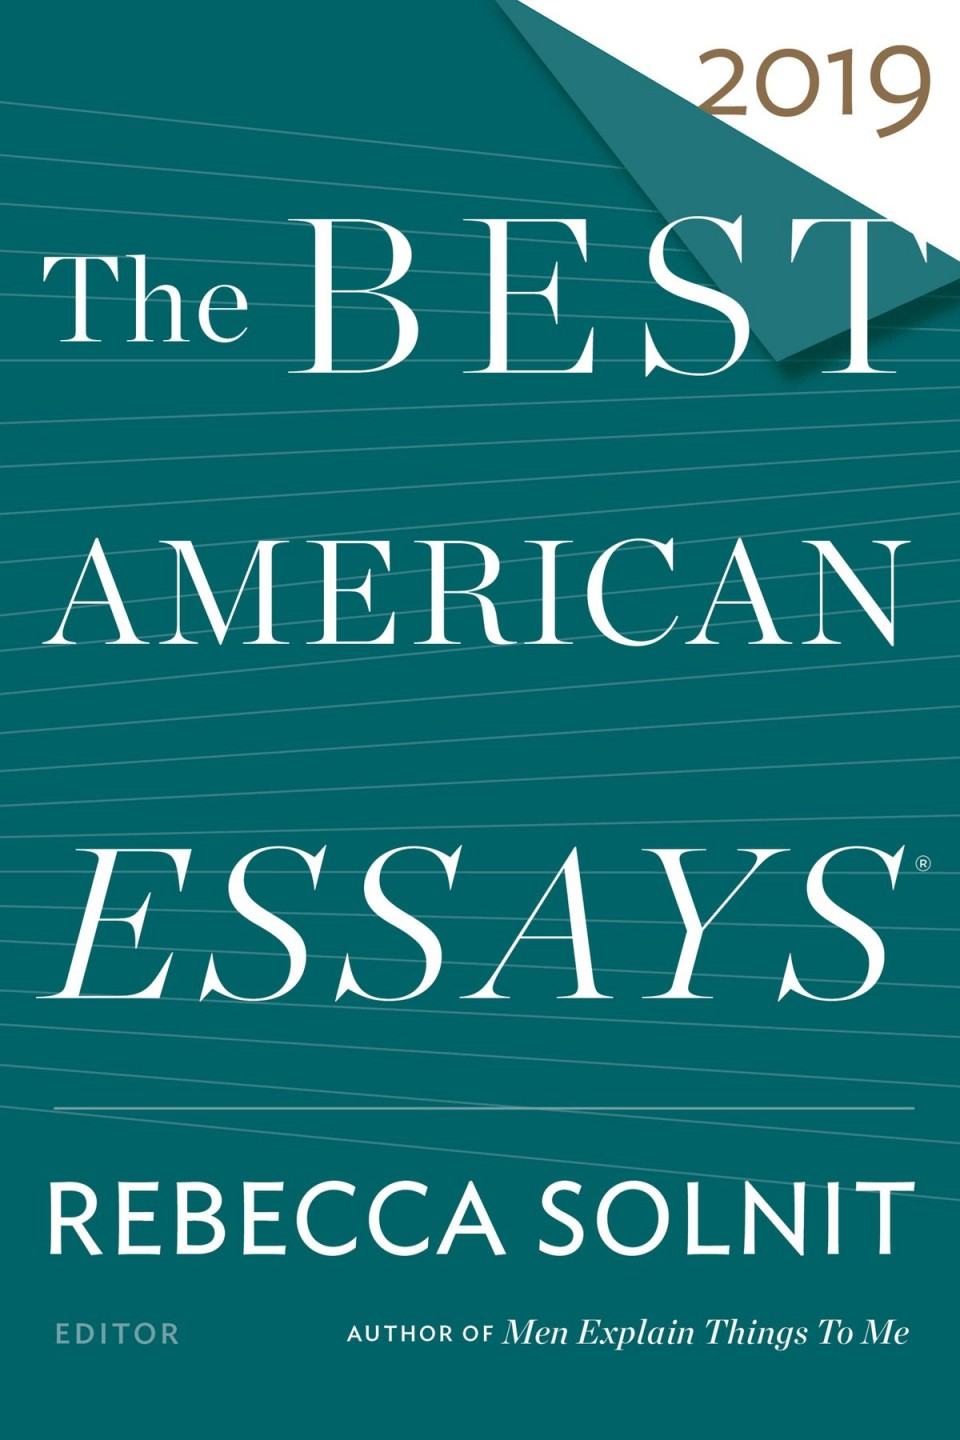 007 The Best American Essays Essay Wonderful 2013 Pdf Download Of Century Sparknotes 2017 960